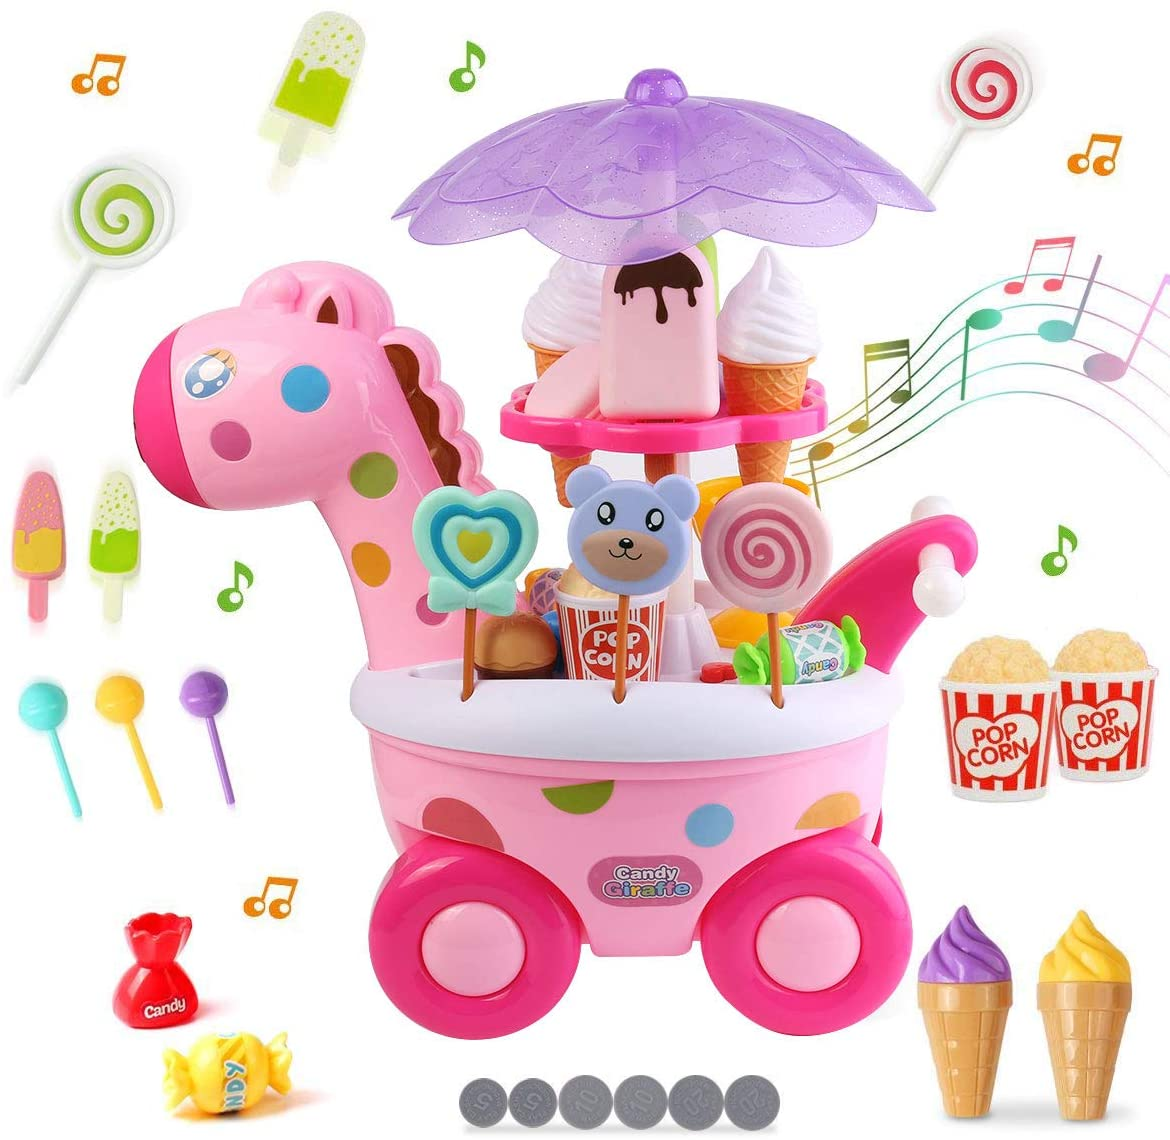 Battery Operated Kitchen Food Cart on Wheels Cooking Pretend Play Set Toy with Sounds and Lights for Kids